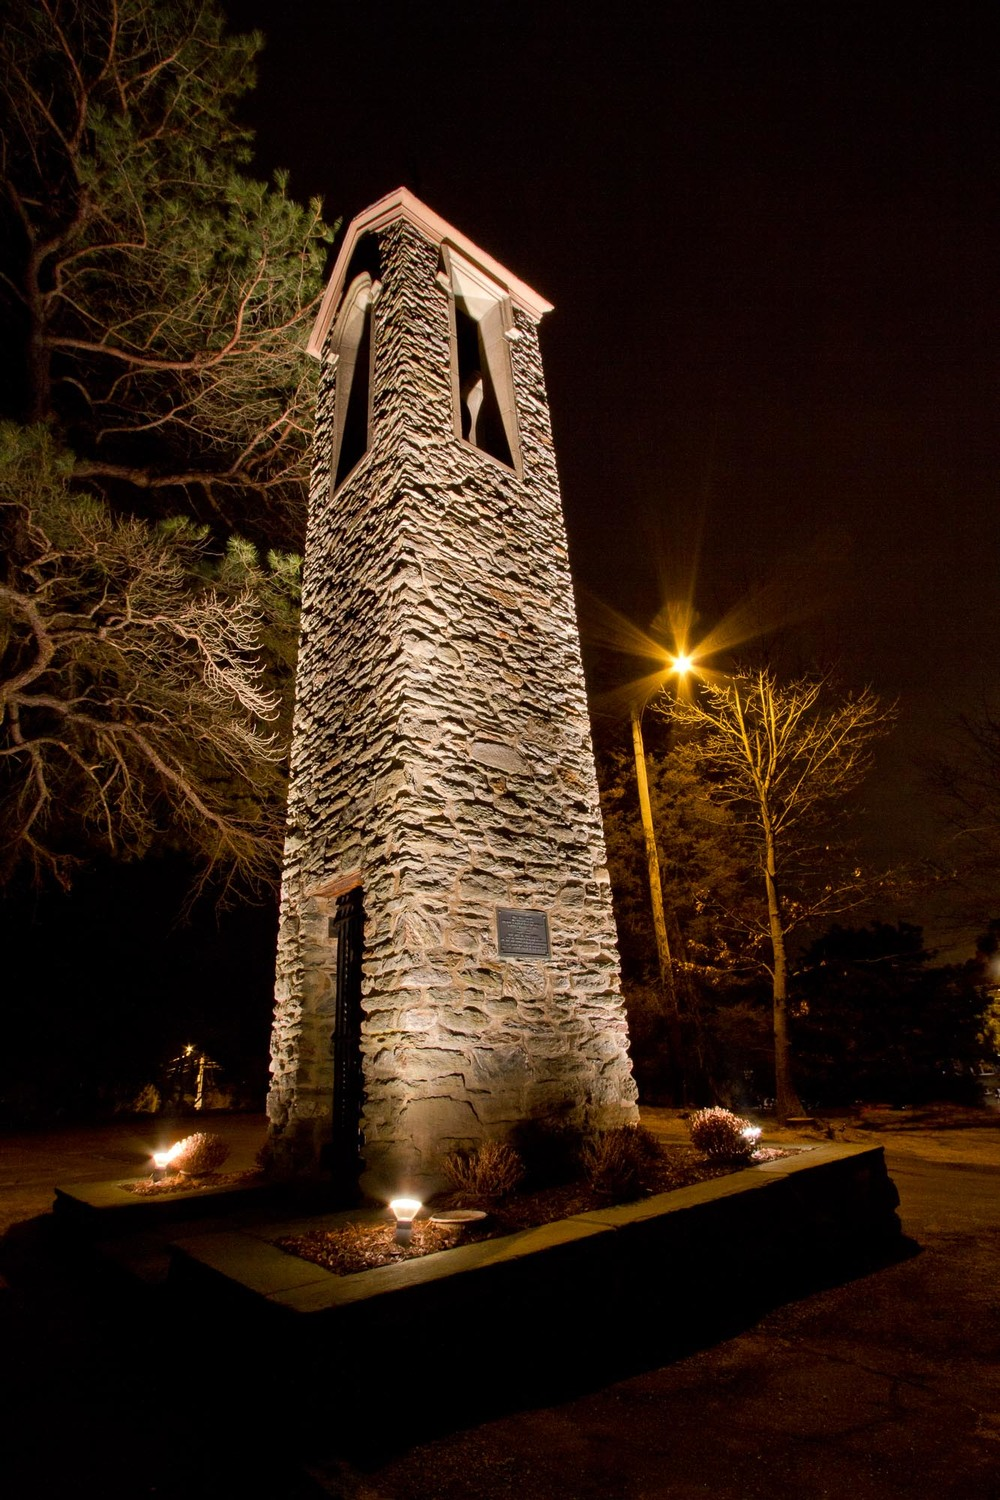 St. Andrew's Church tower at night